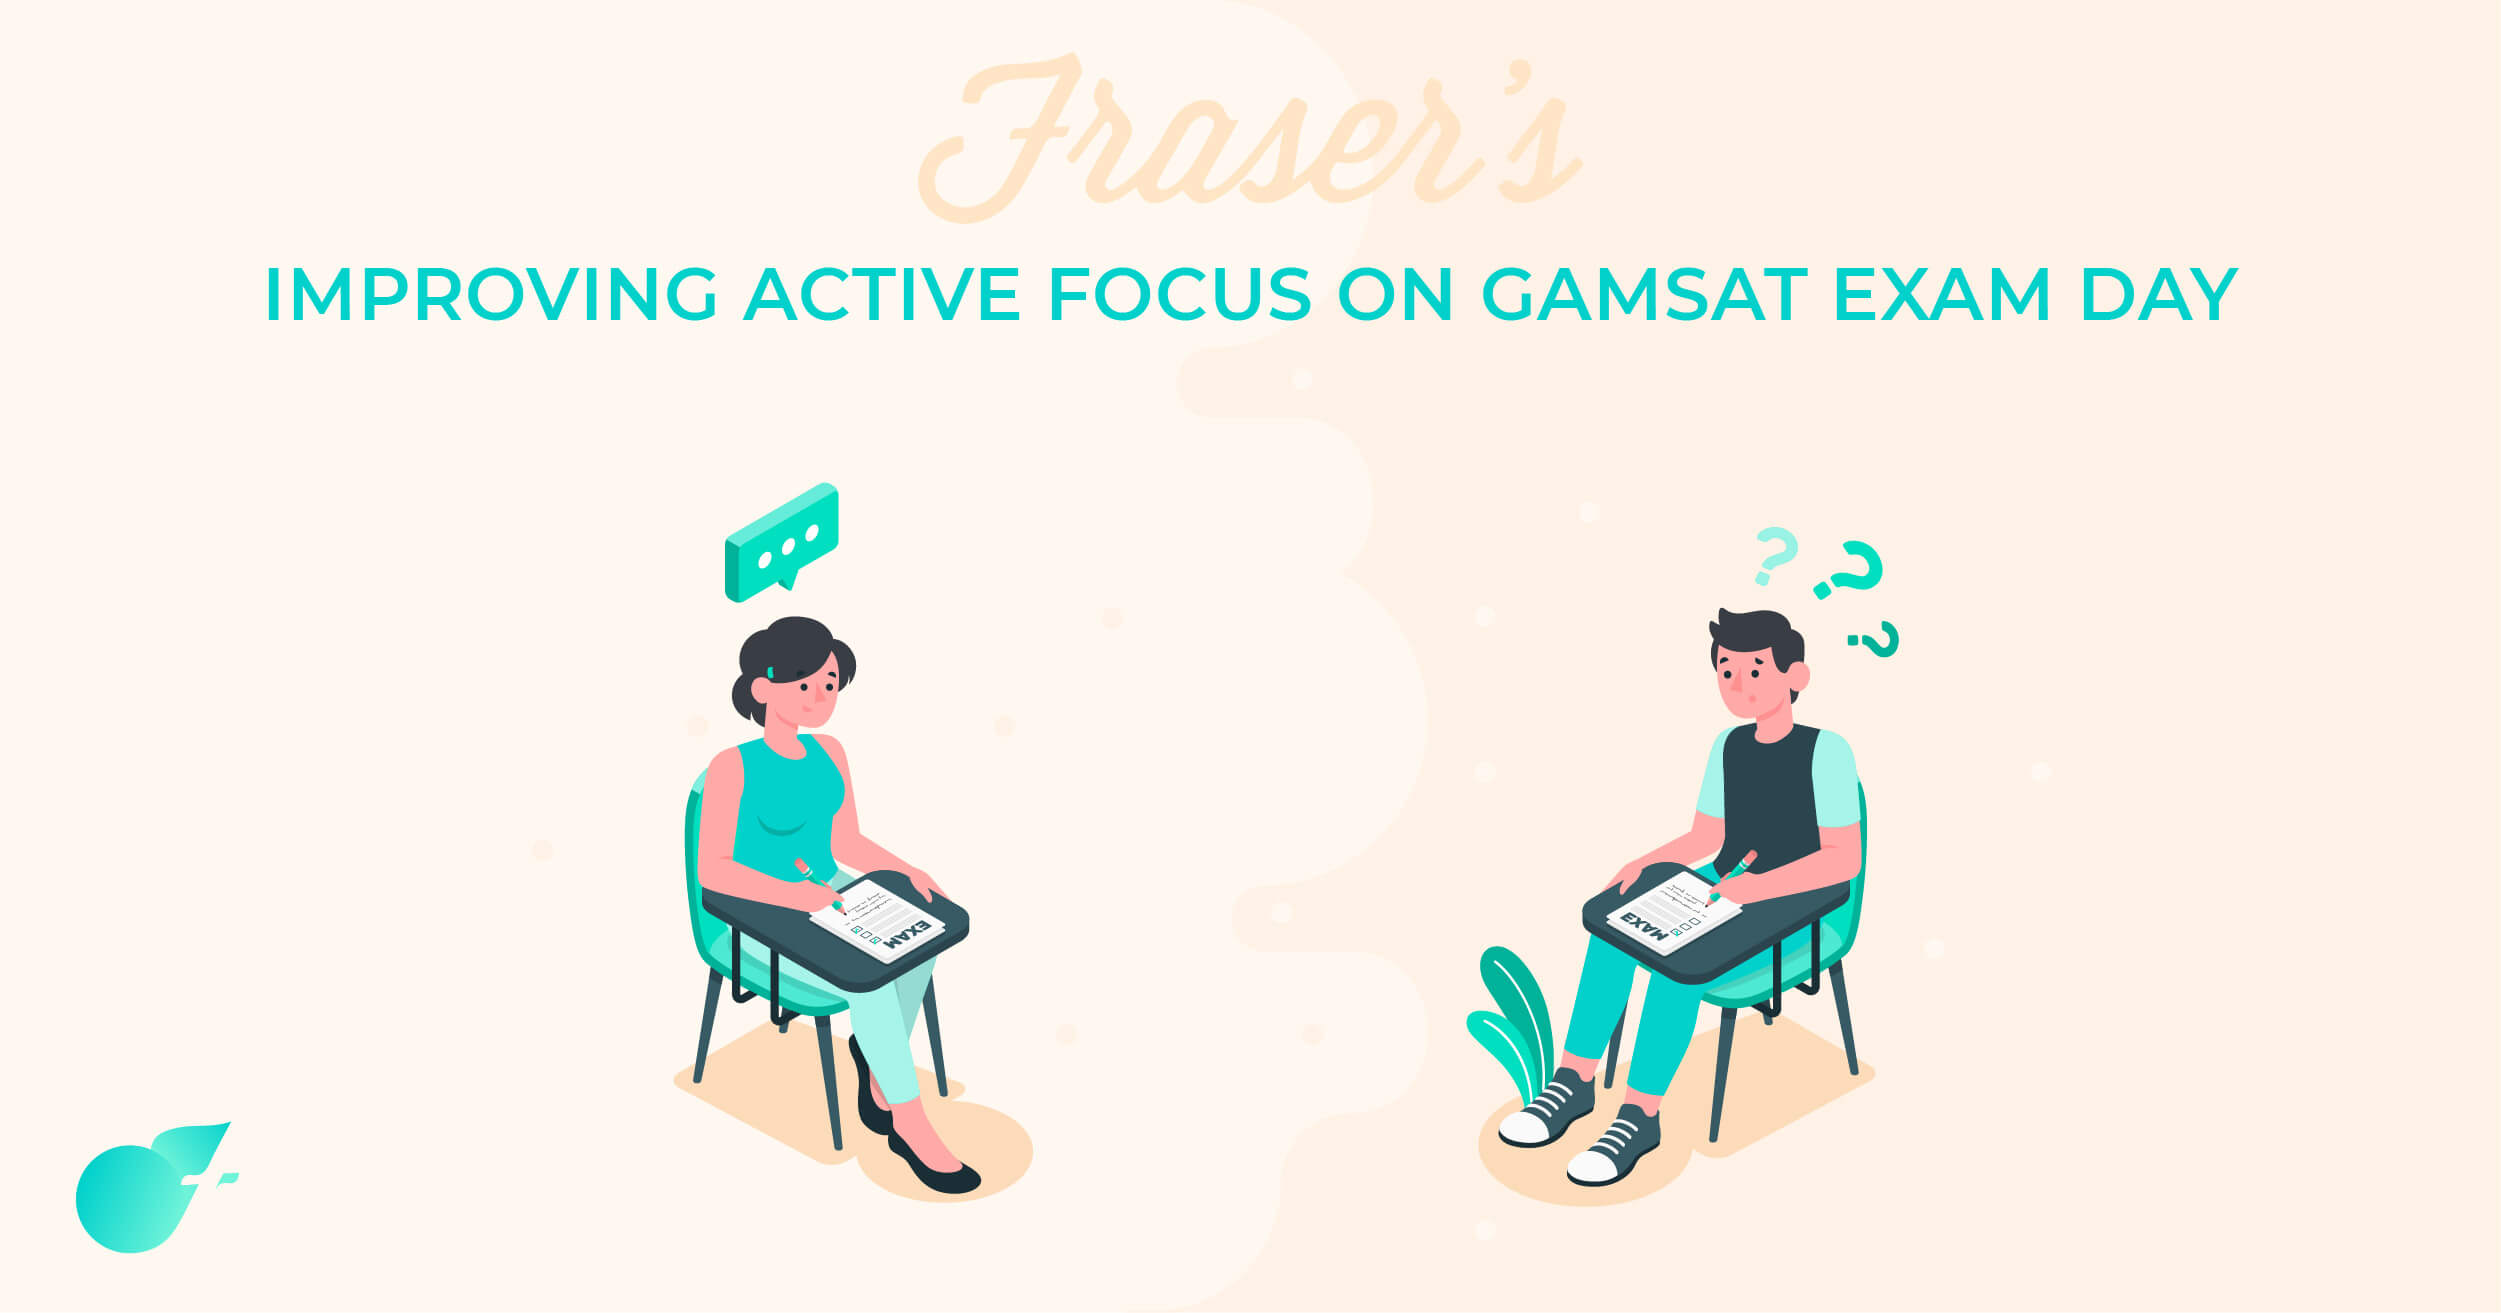 Improving Active Focus on GAMSAT Exam Day featured image